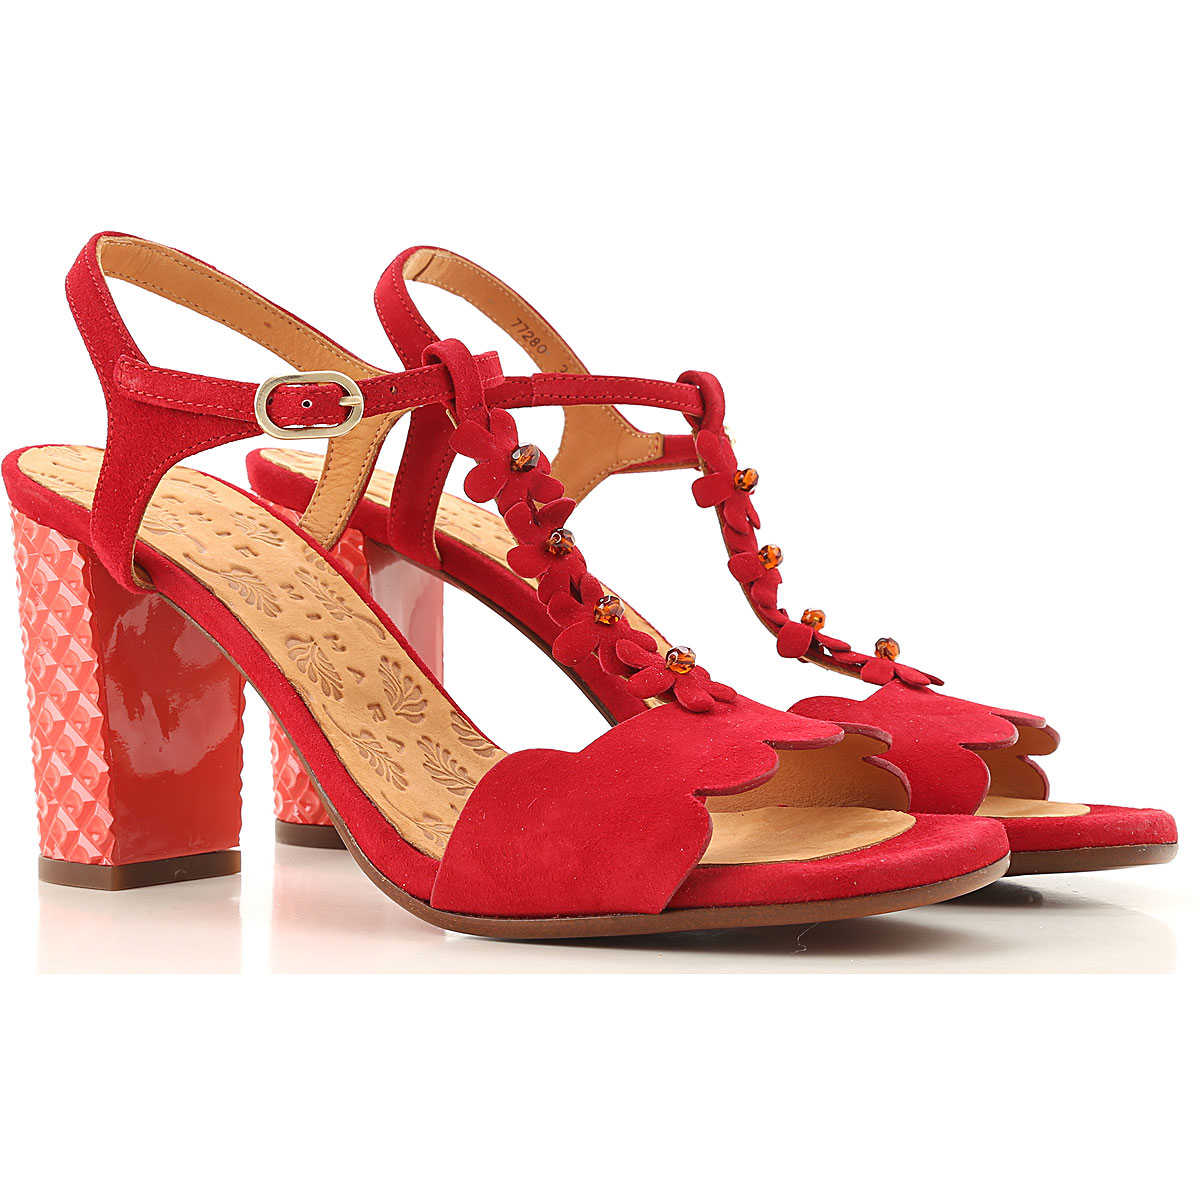 Chie Mihara Sandals for Women Red USA - GOOFASH